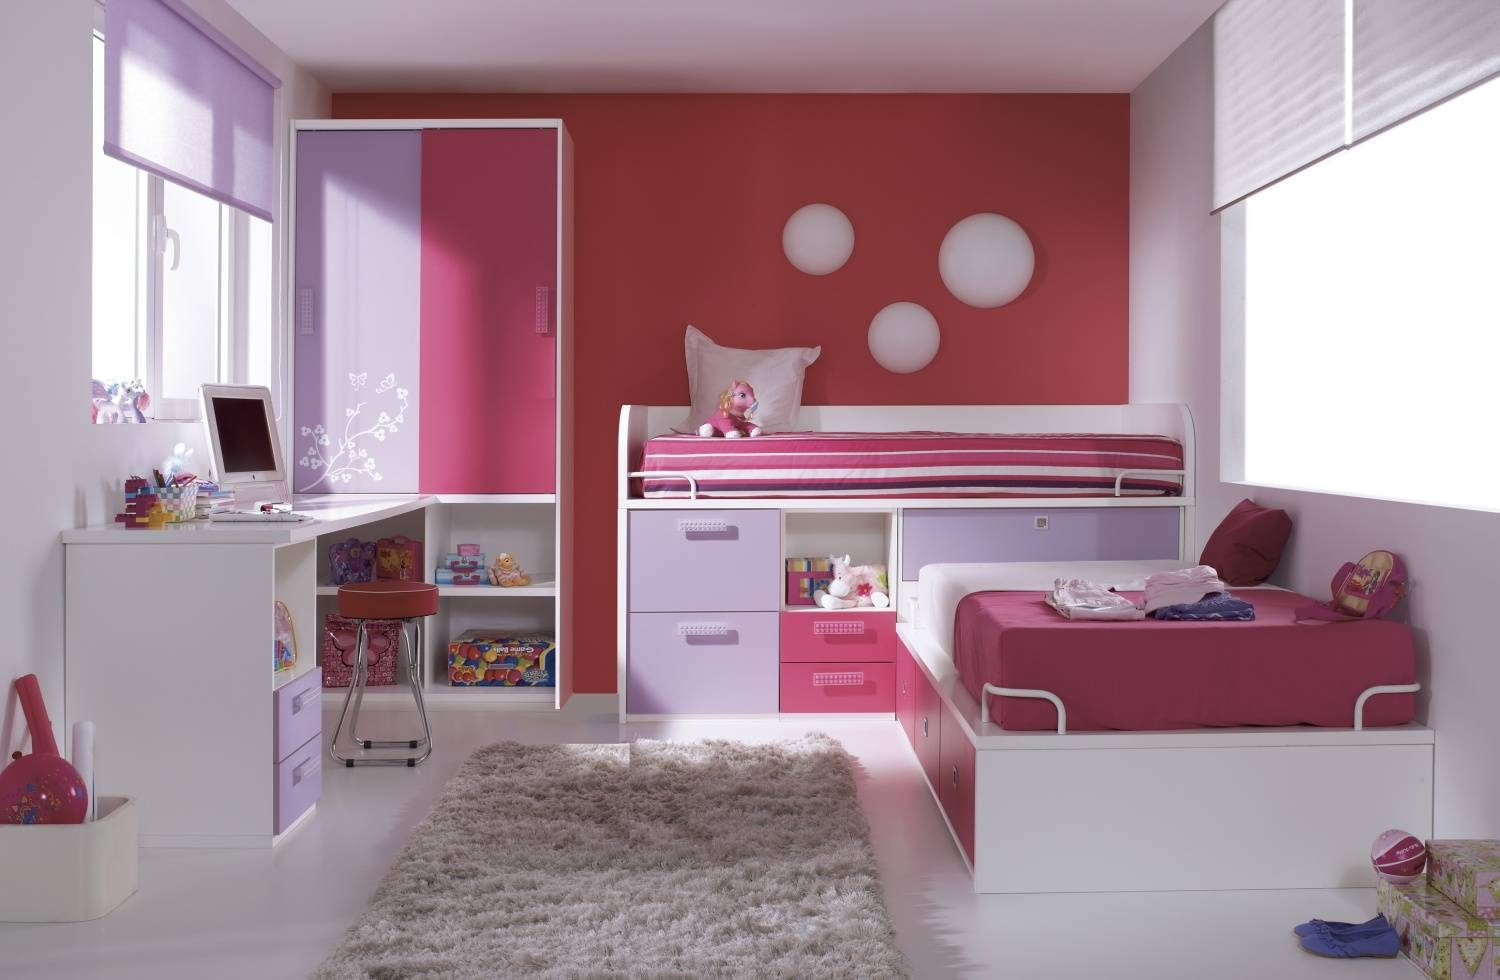 Kids Bedroom Sets | Kids Beds | Wardrobes | Desks | Made In Any Colour throughout Childrens Bed With Wardrobes Underneath (Image 9 of 15)